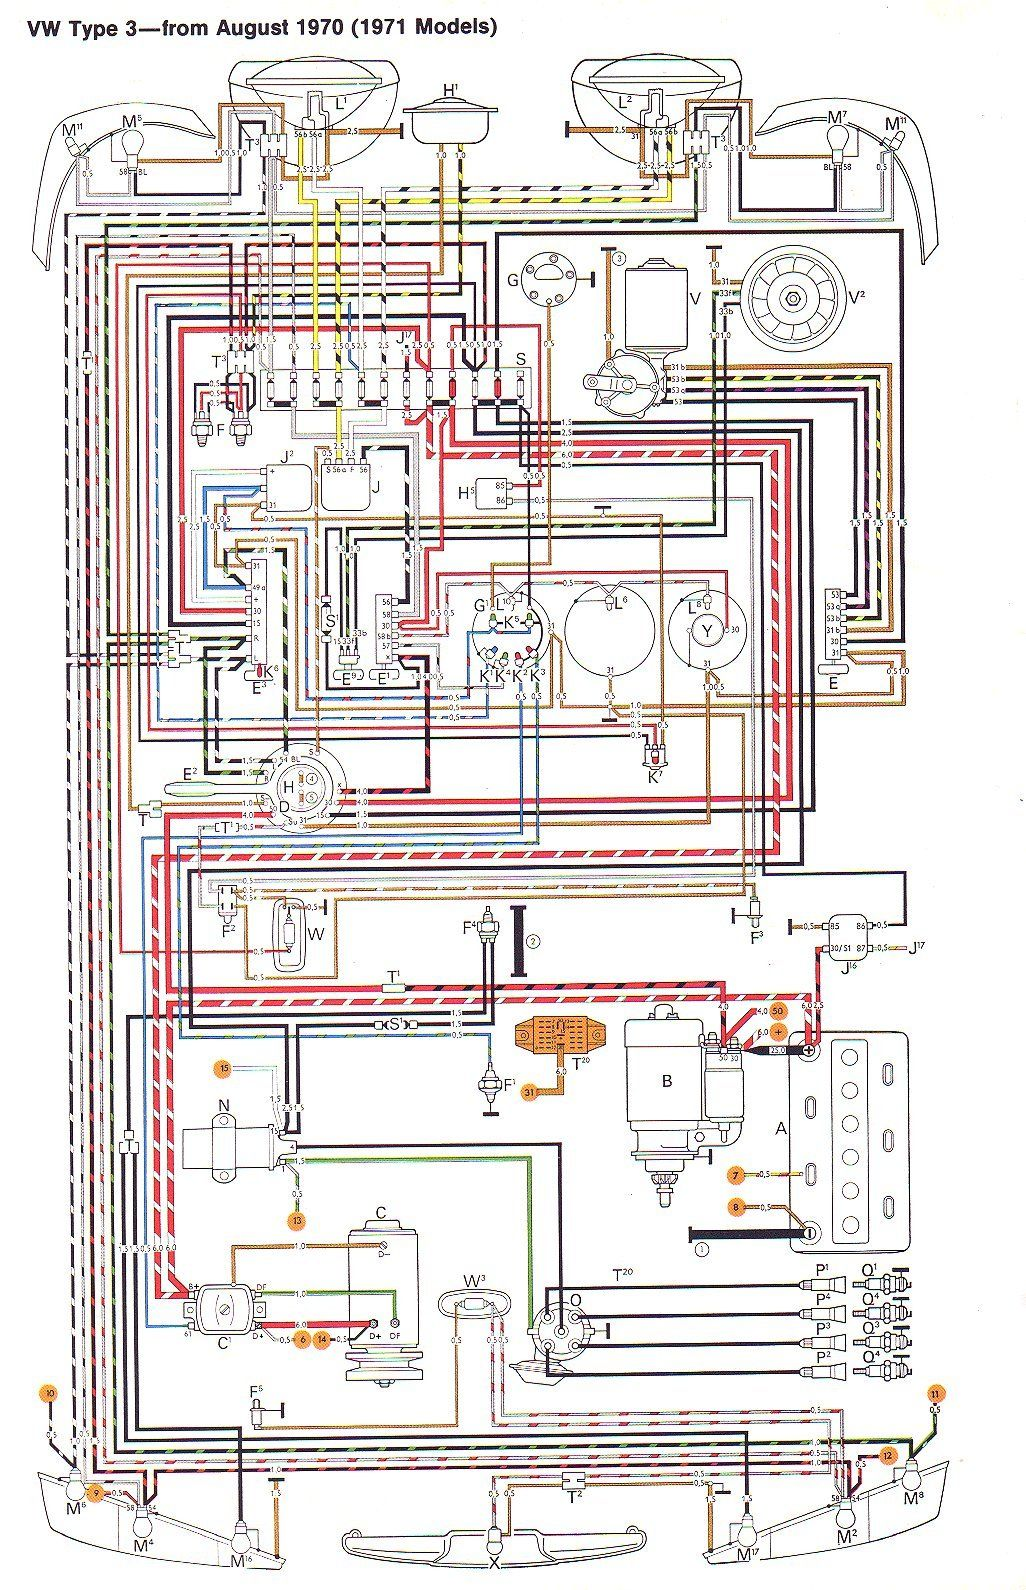 e0db58370f79a63d02d45f00cf63f44a 71 vw t3 wiring diagram ruthie pinterest volkswagen, engine vw engine wiring diagram at gsmportal.co